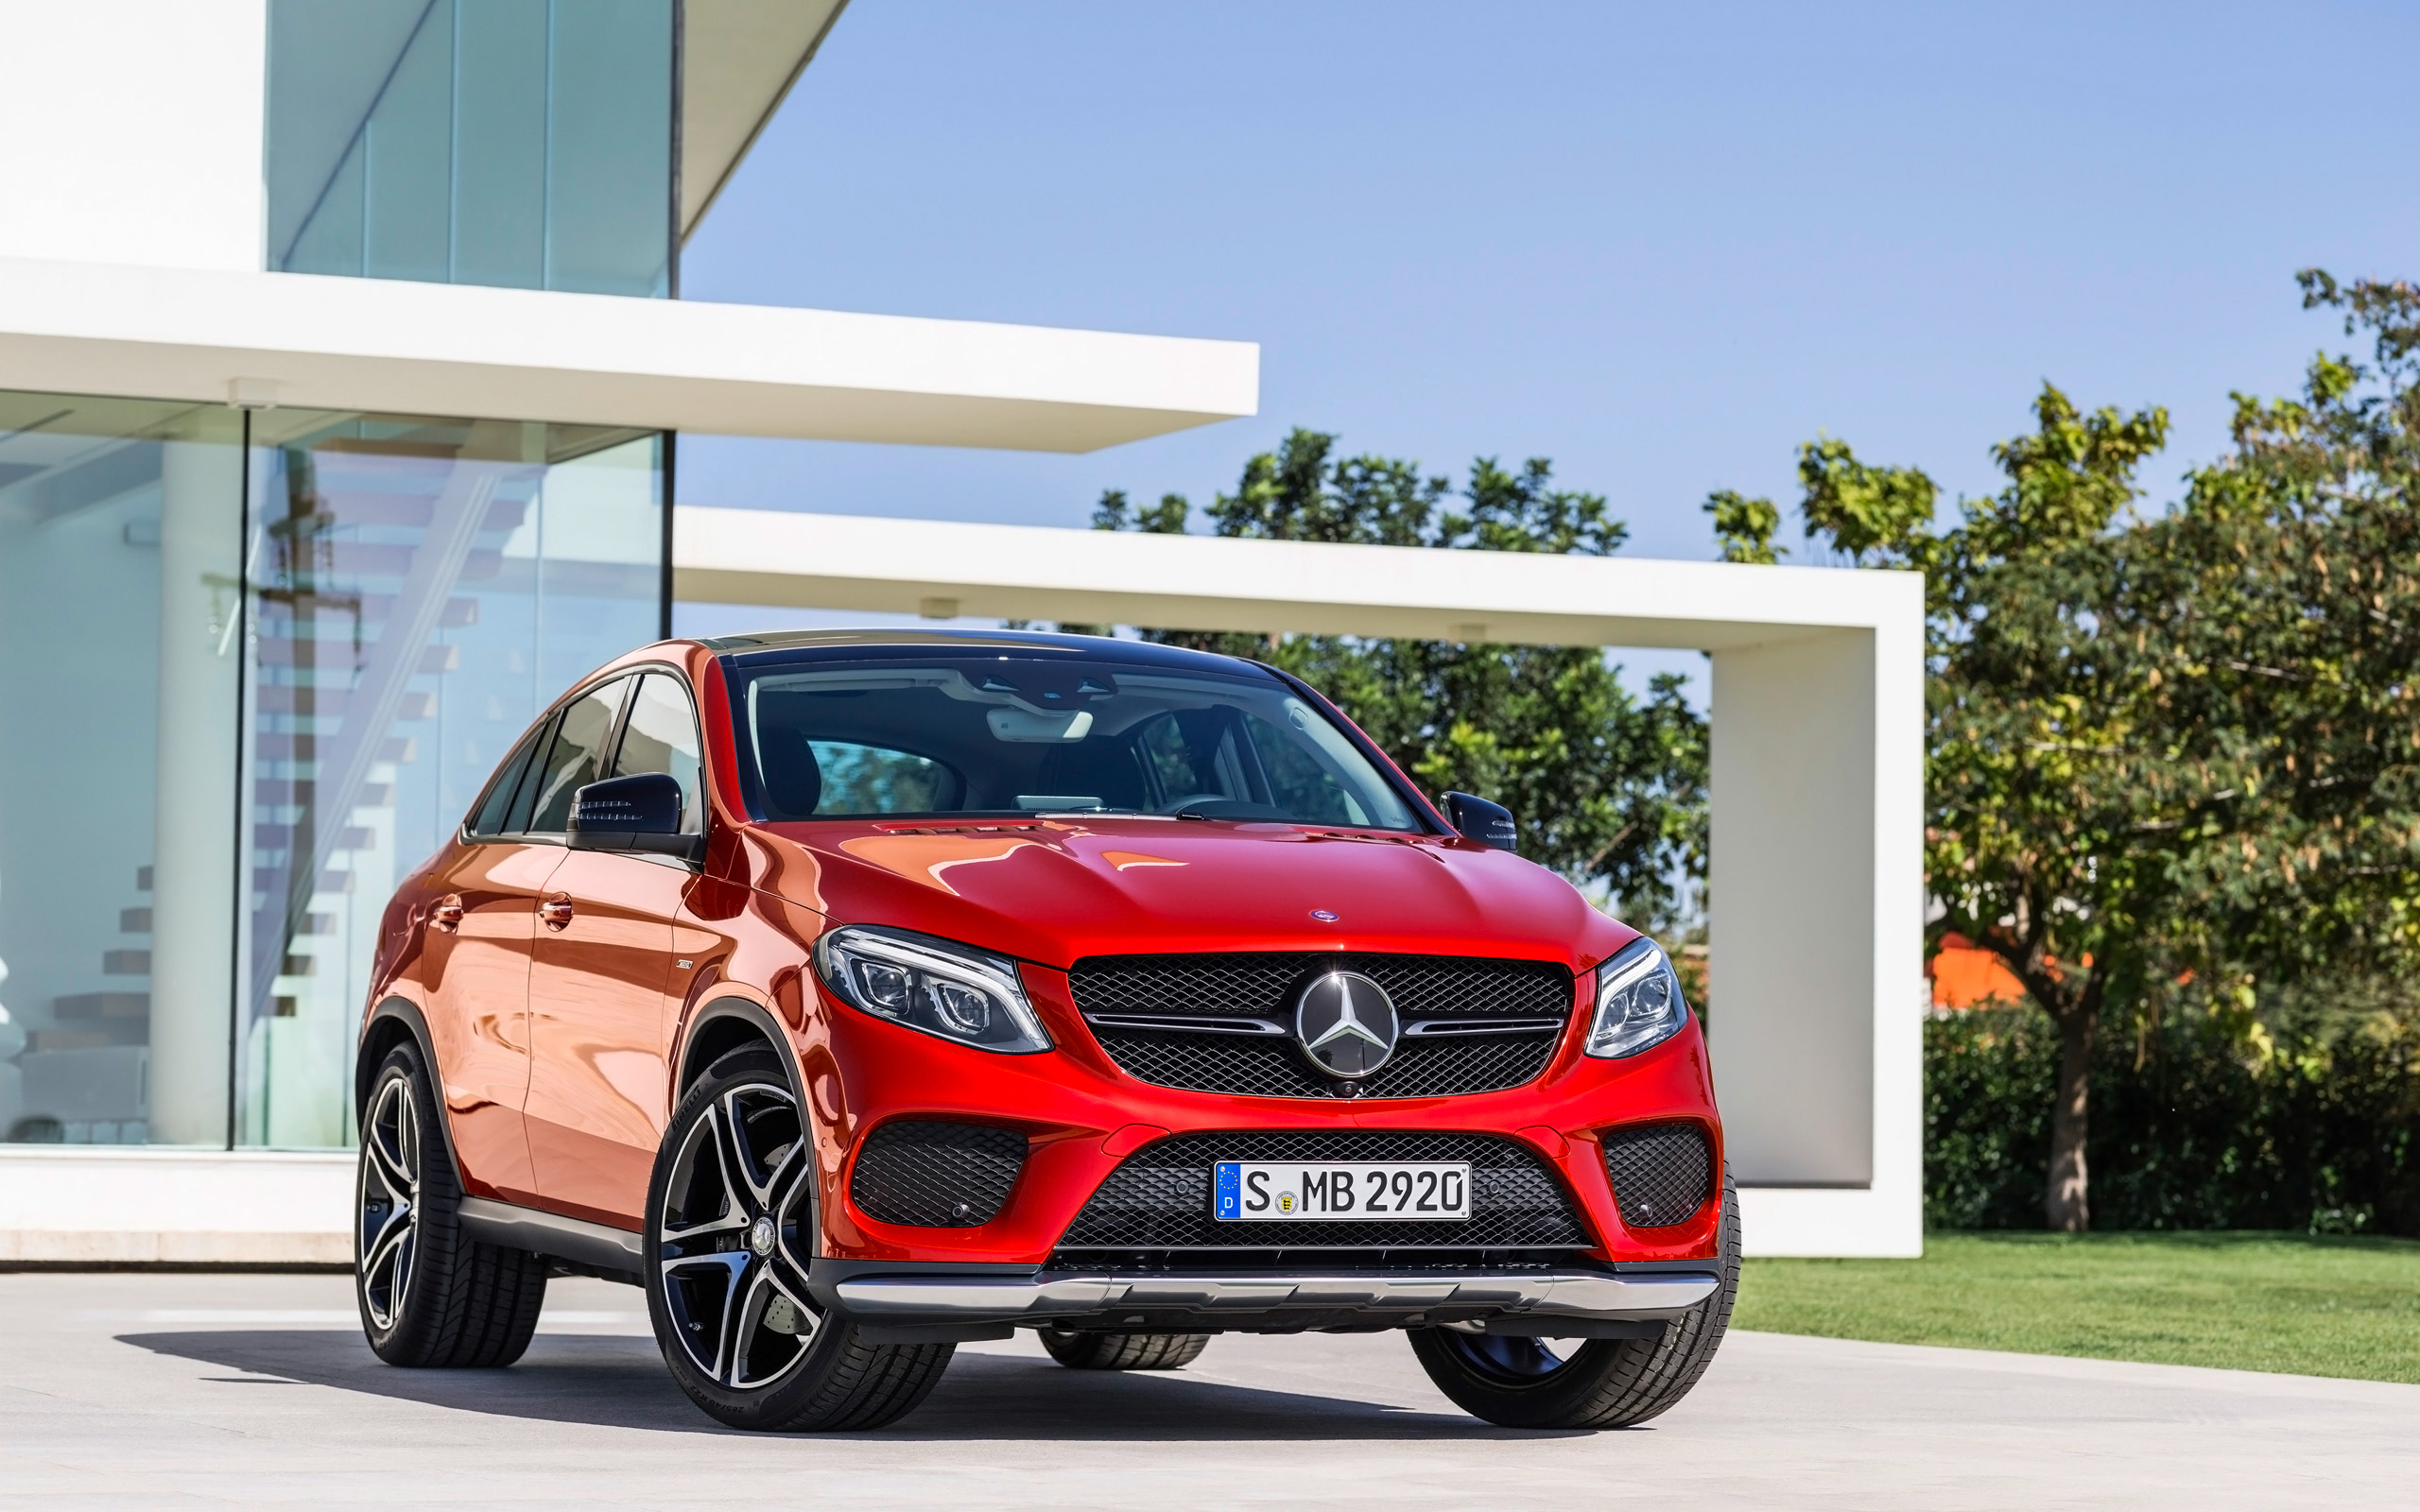 Mercedes Benz Gle Coupe 2015 Wallpaper Hd Car Wallpapers Id 5024